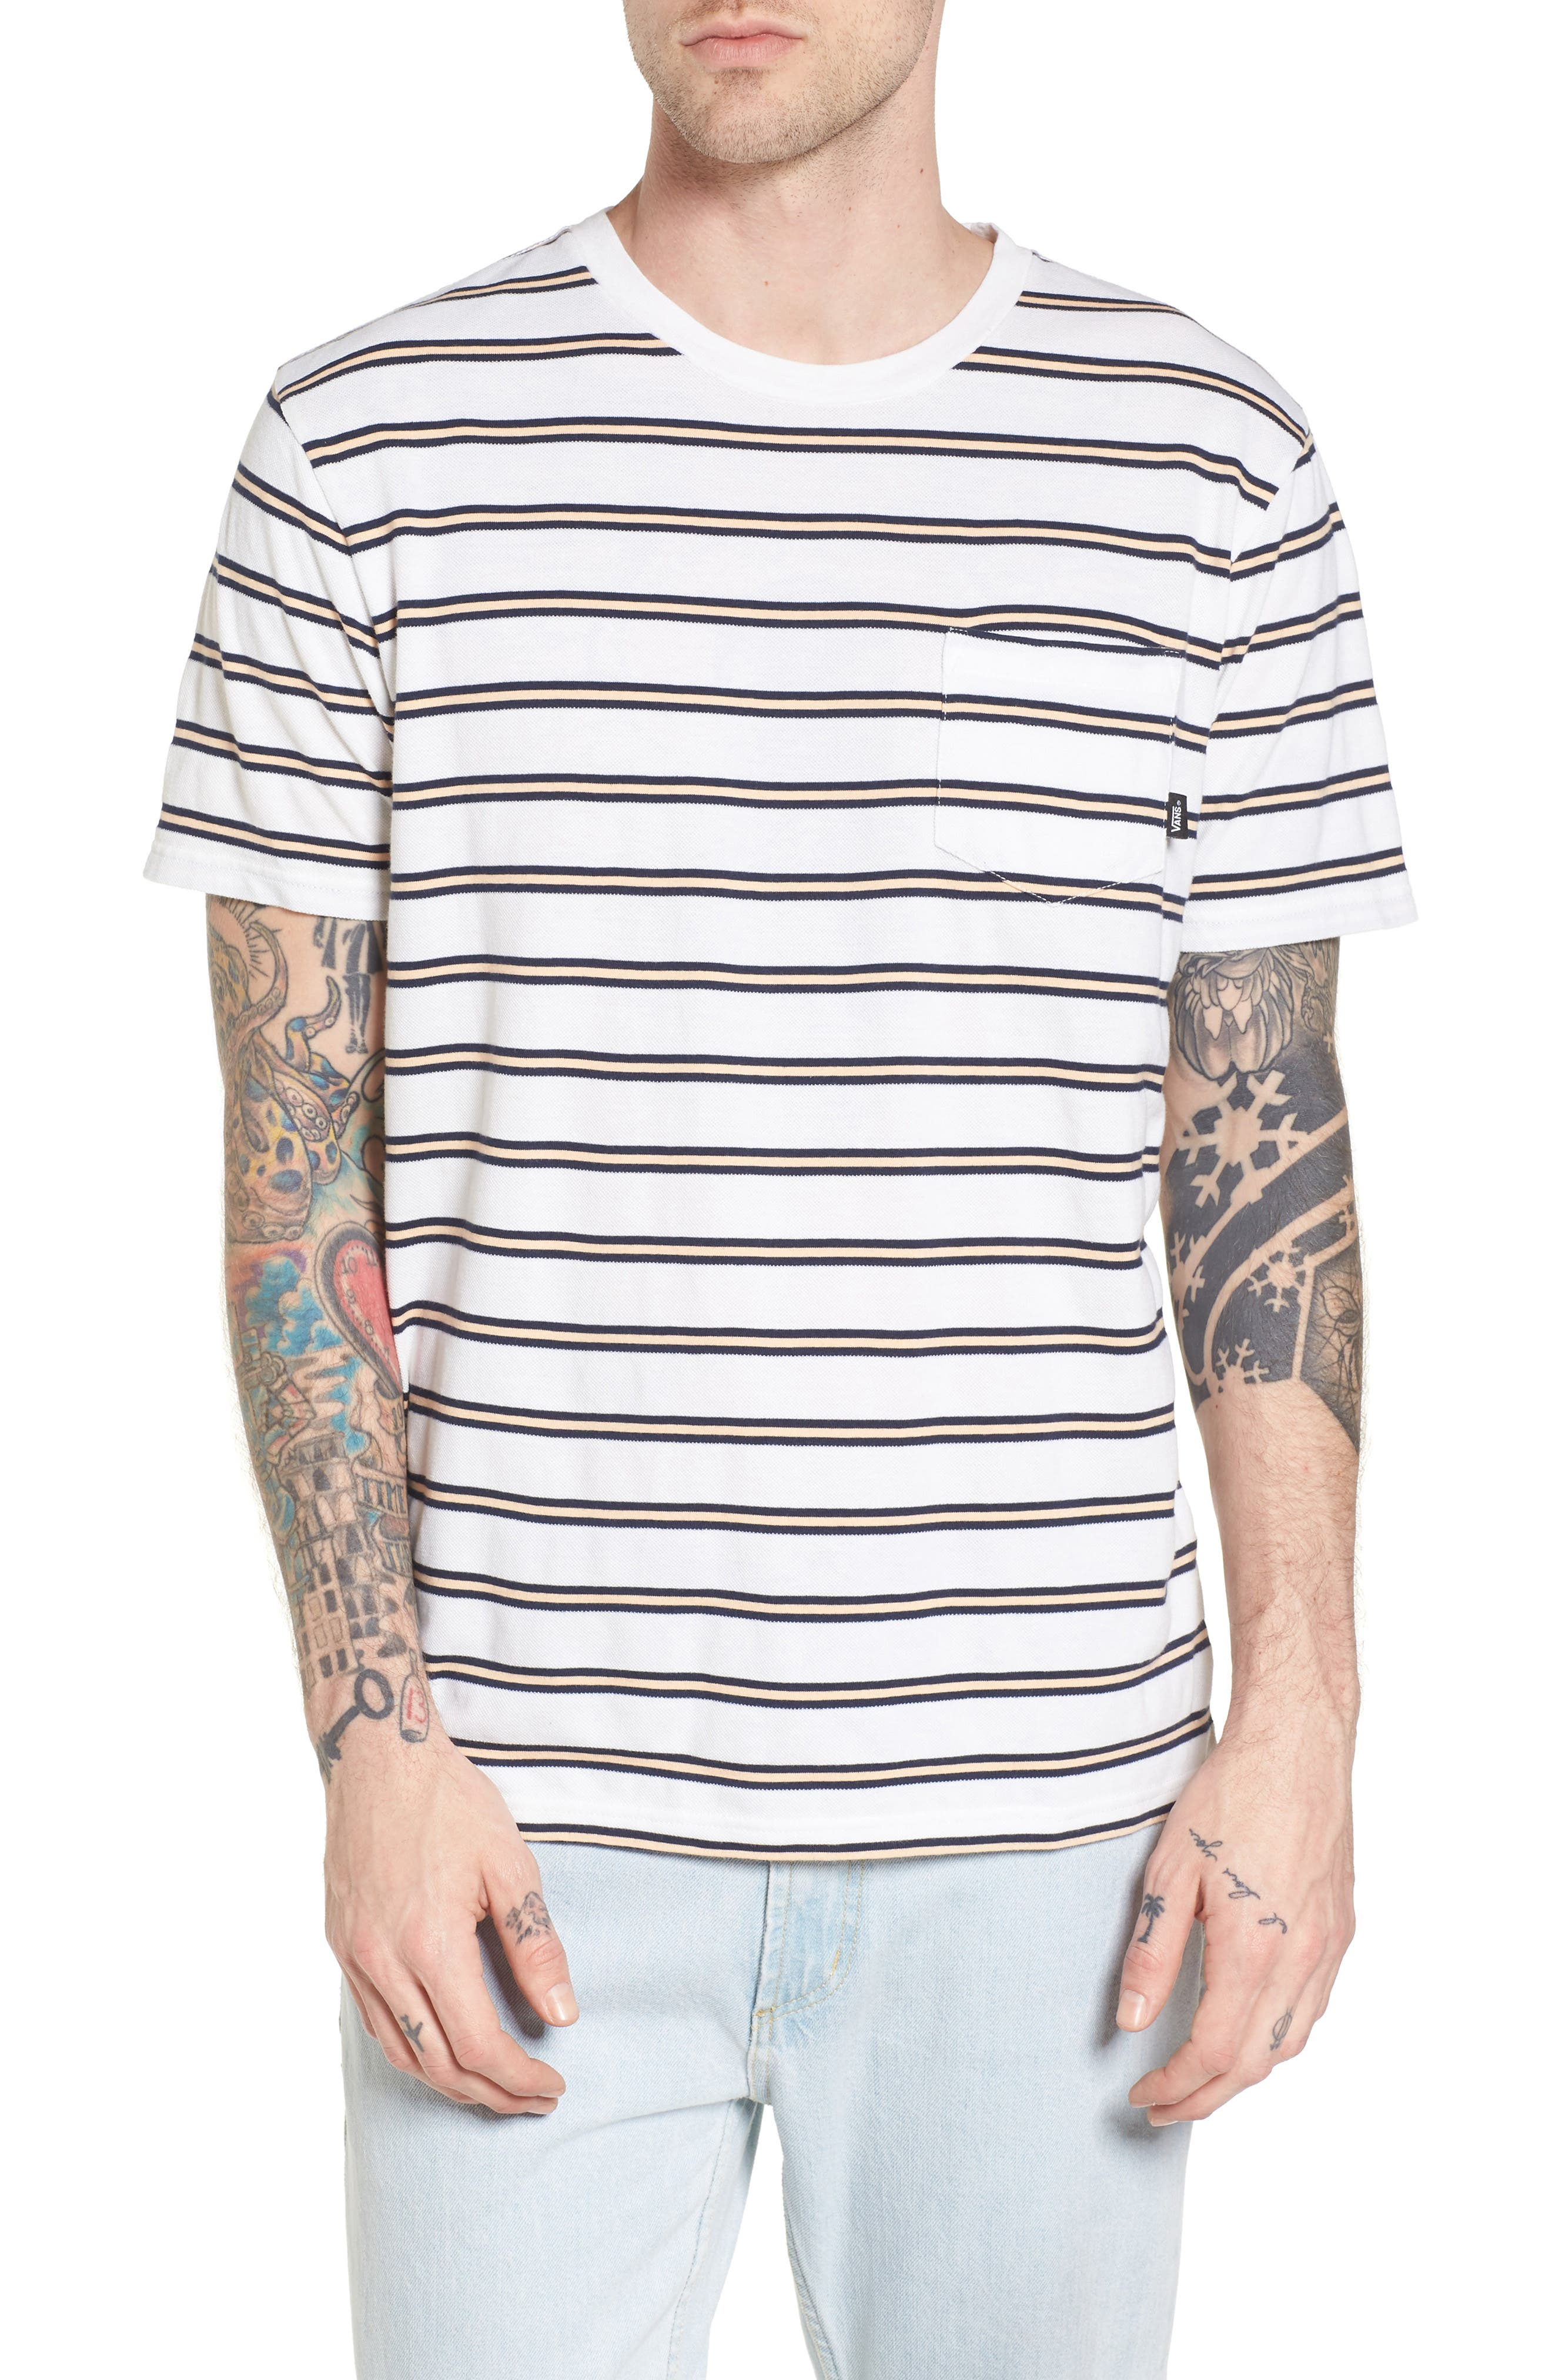 Whittier Pocket T-Shirt,                         Main,                         color, Marshmallow